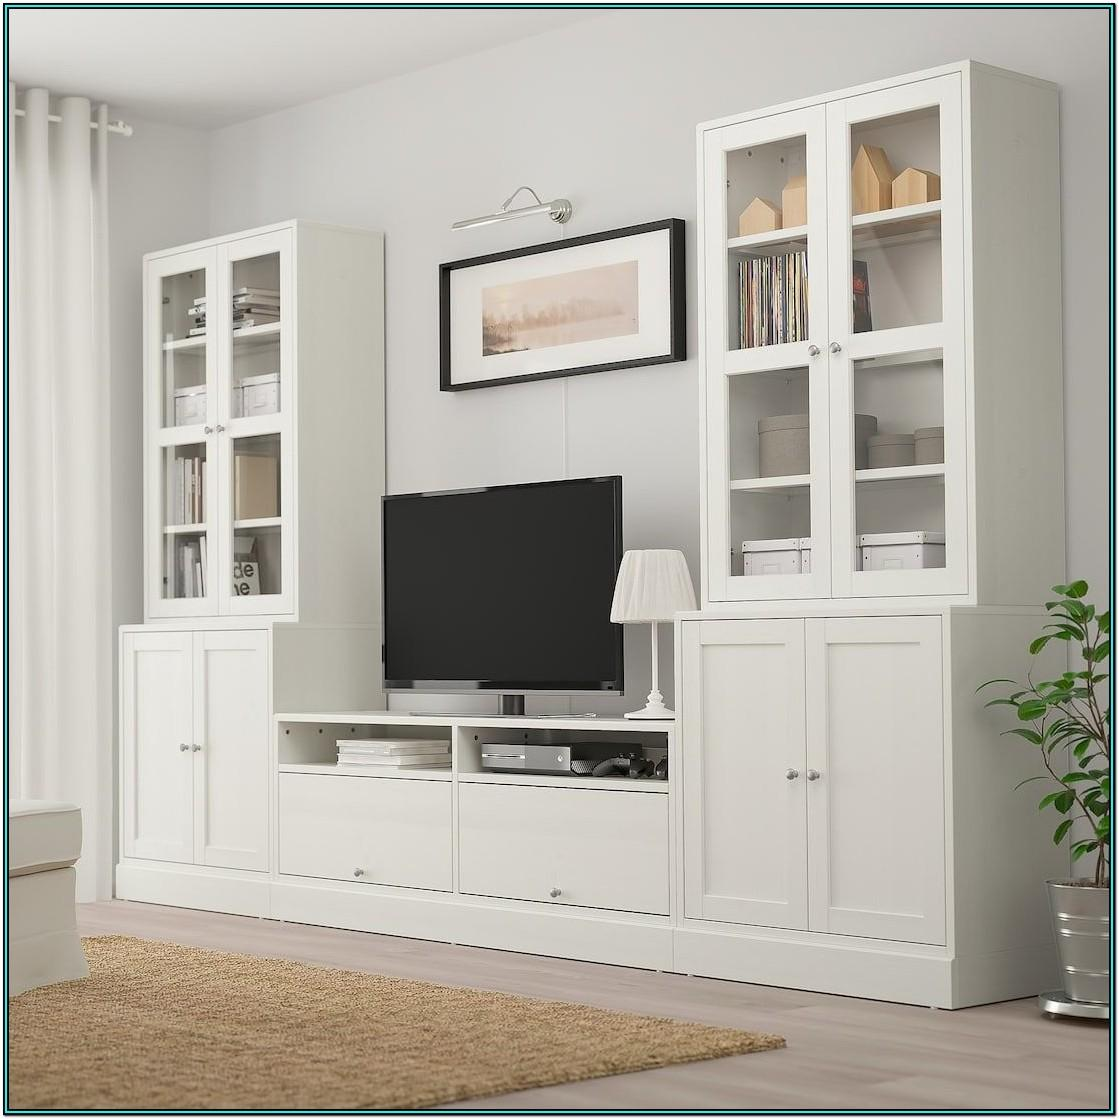 Living Room Storage Cabinets With Glass Doors